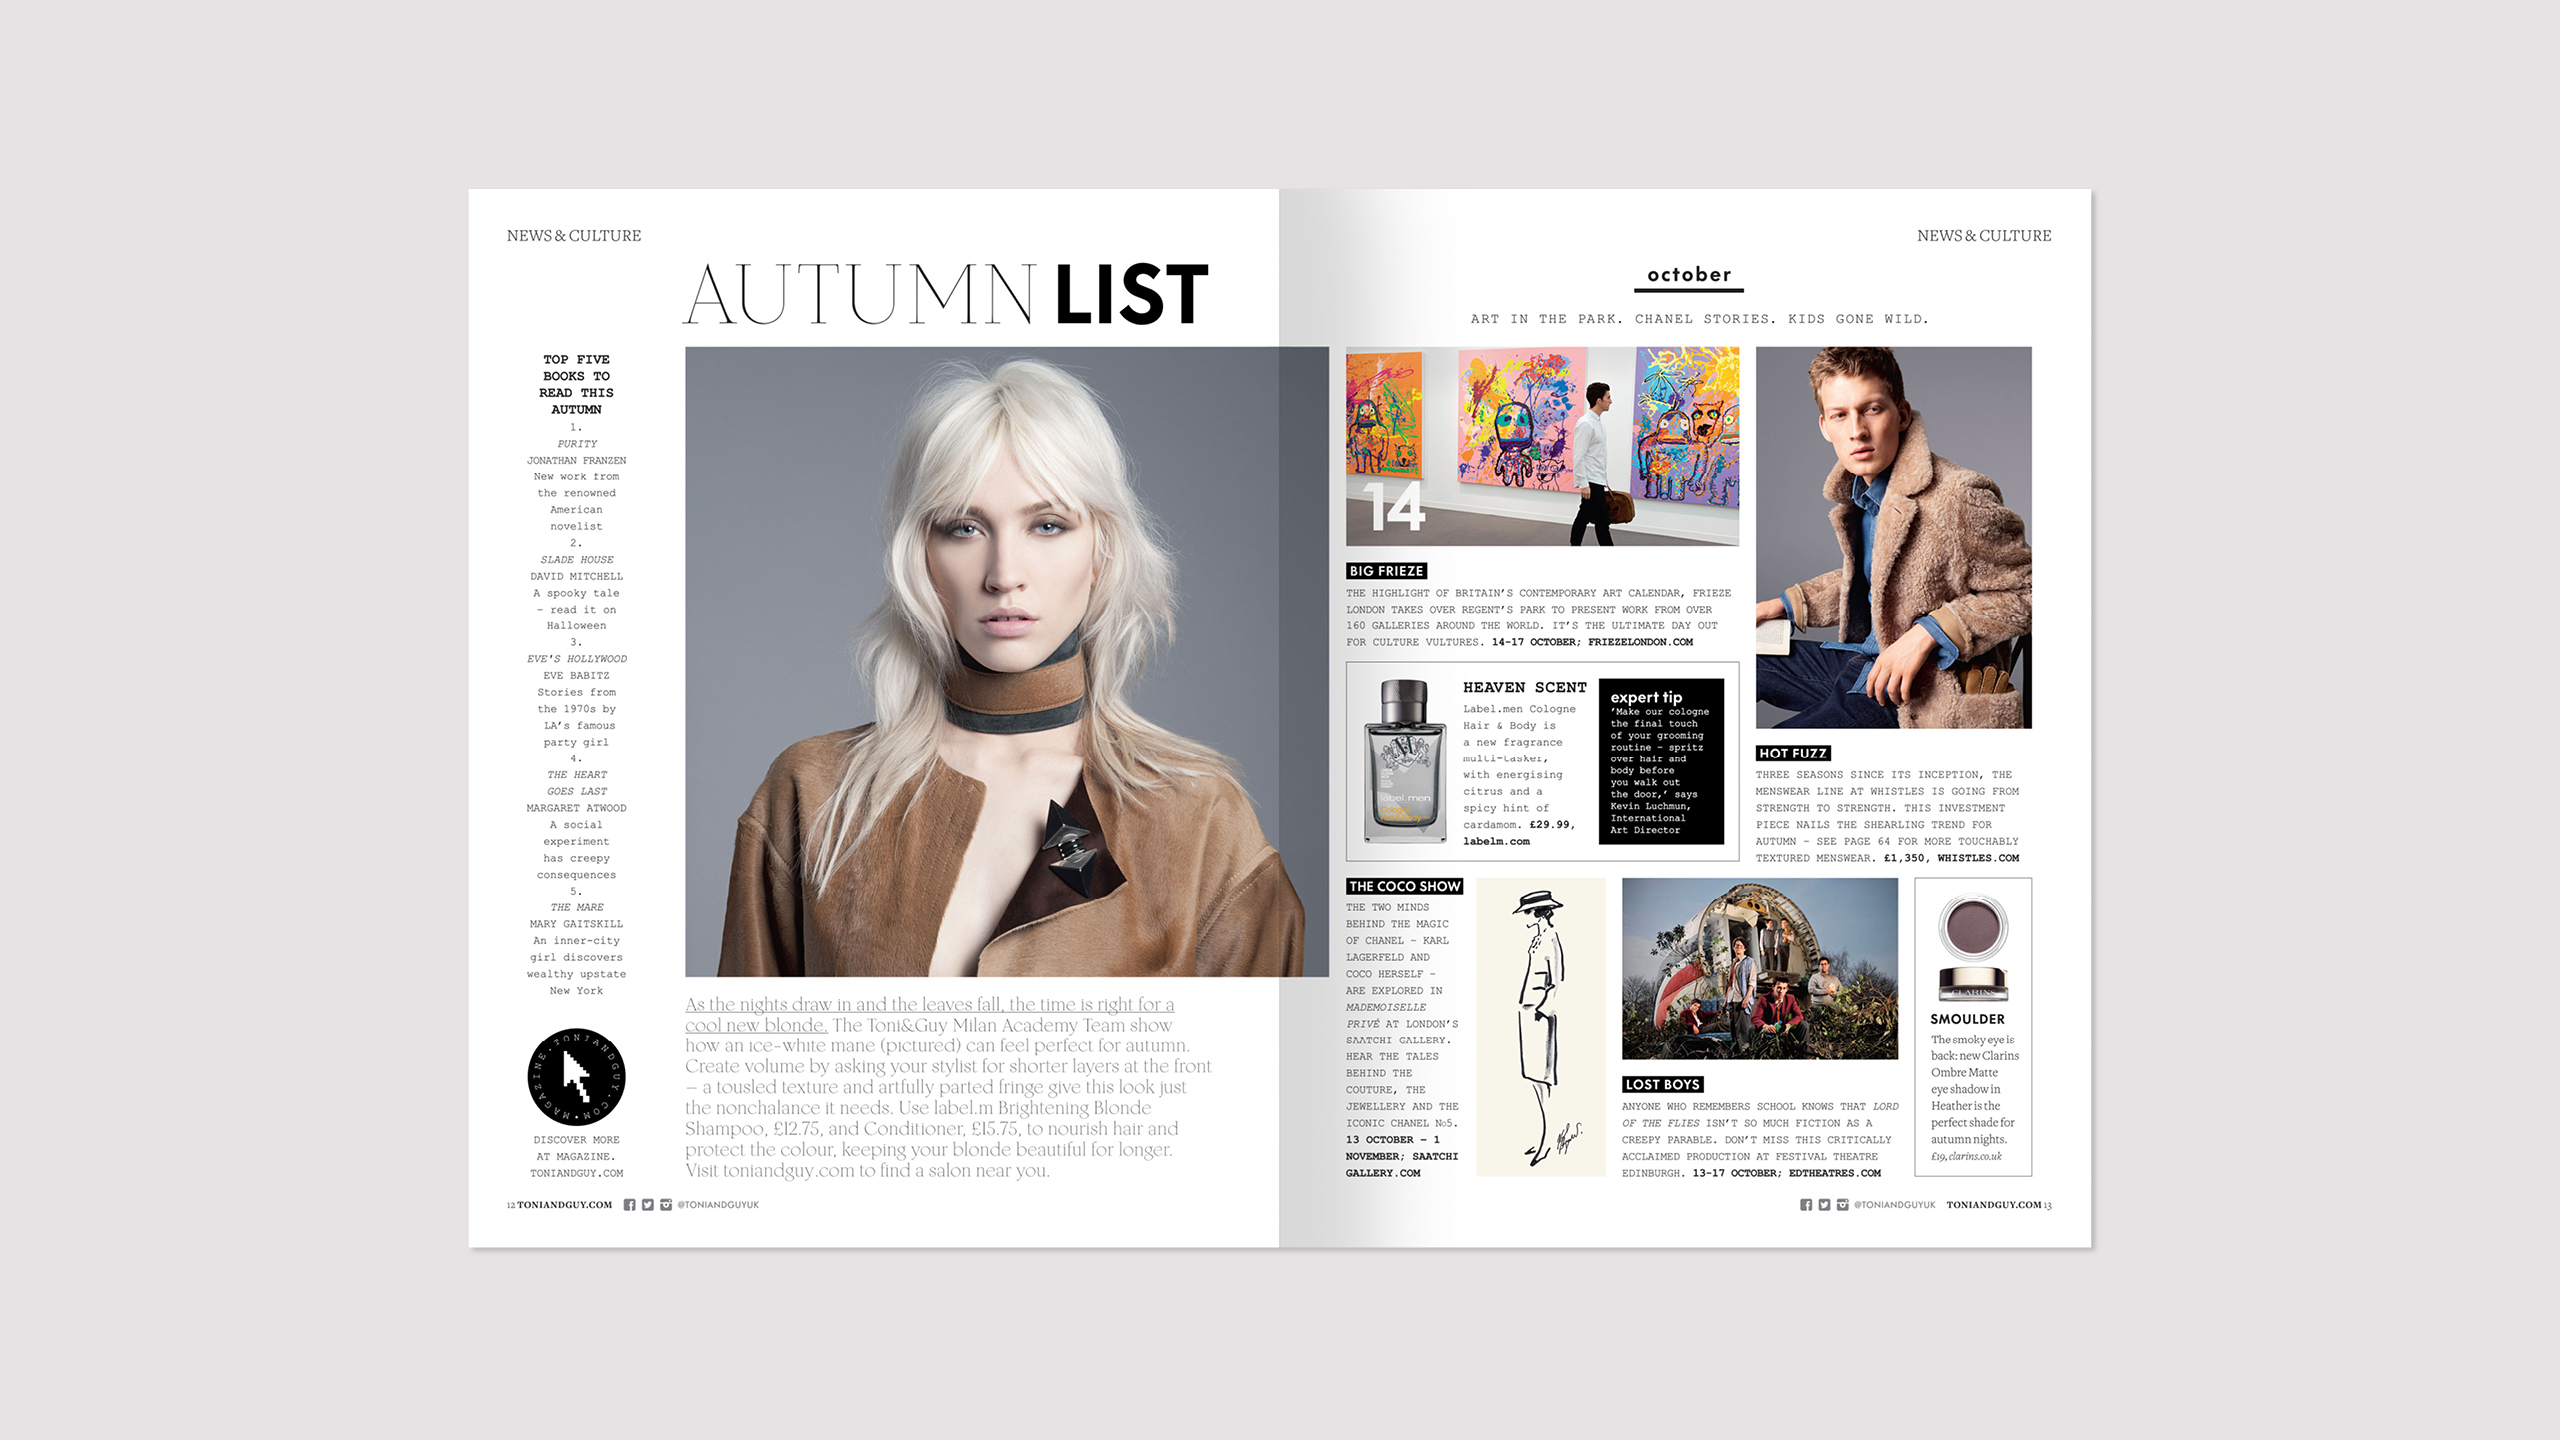 Toni&Guy autumn/winter issue 40